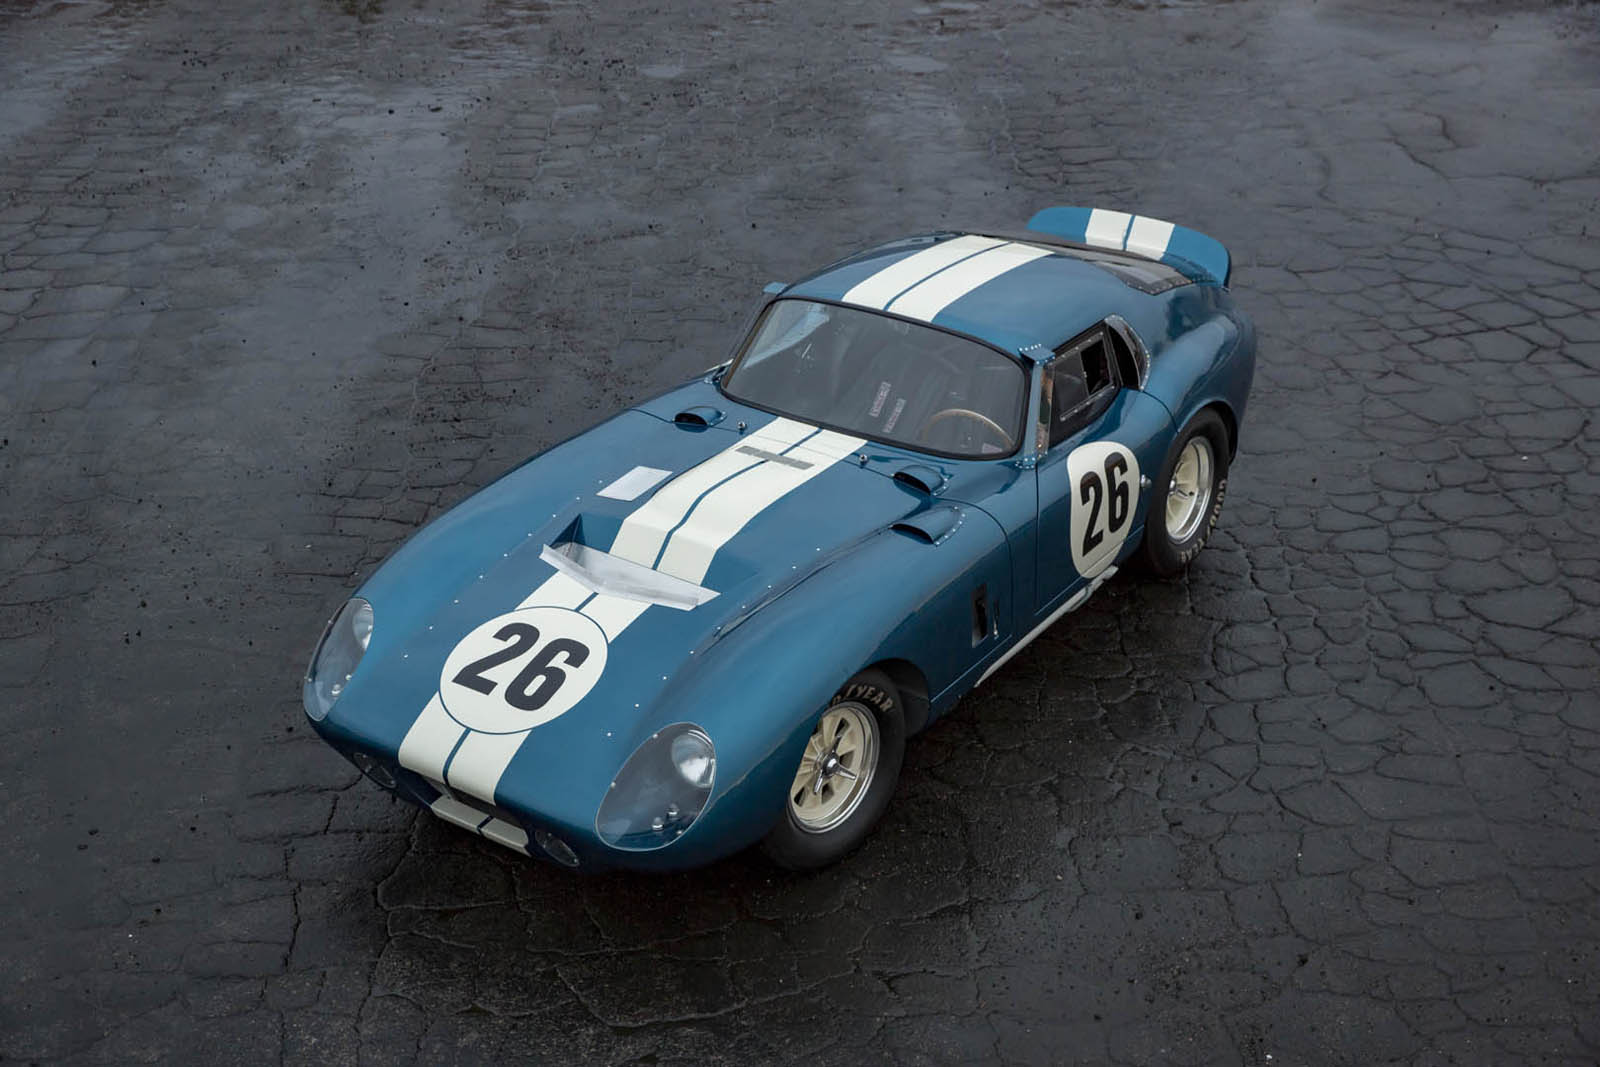 shelby-cobra-bondurant-edition-07